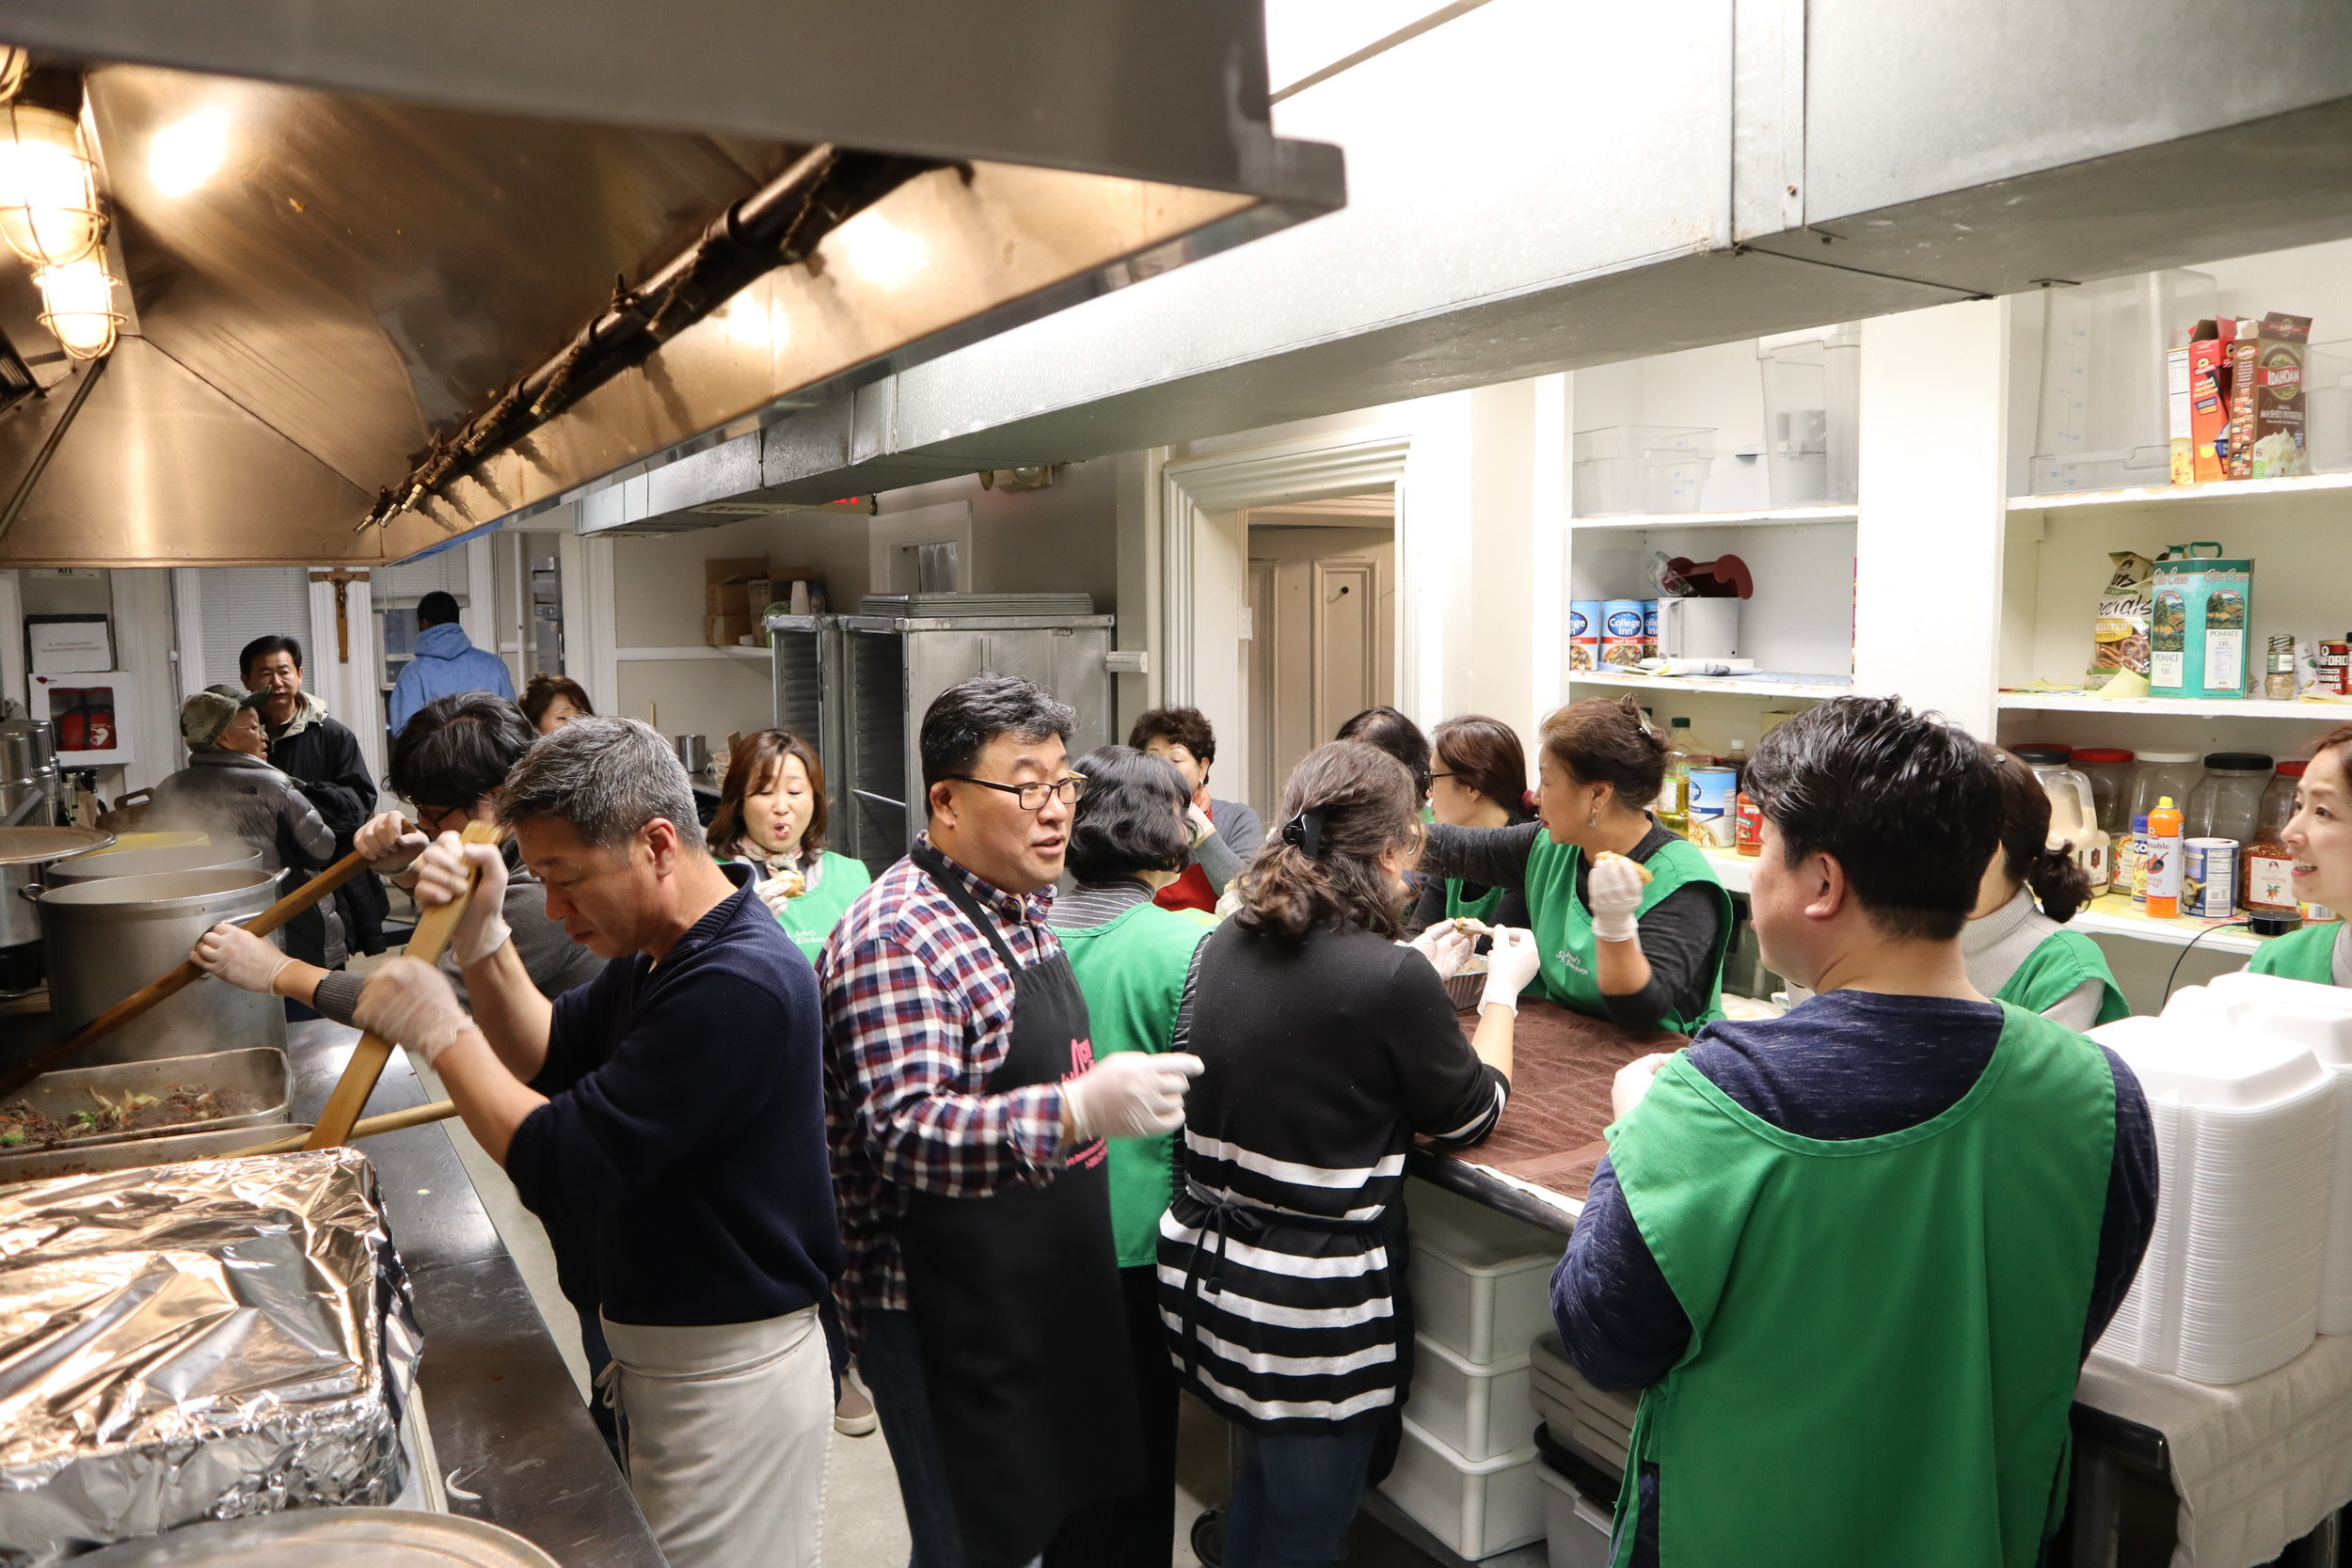 Everyone working together in the kitchen!